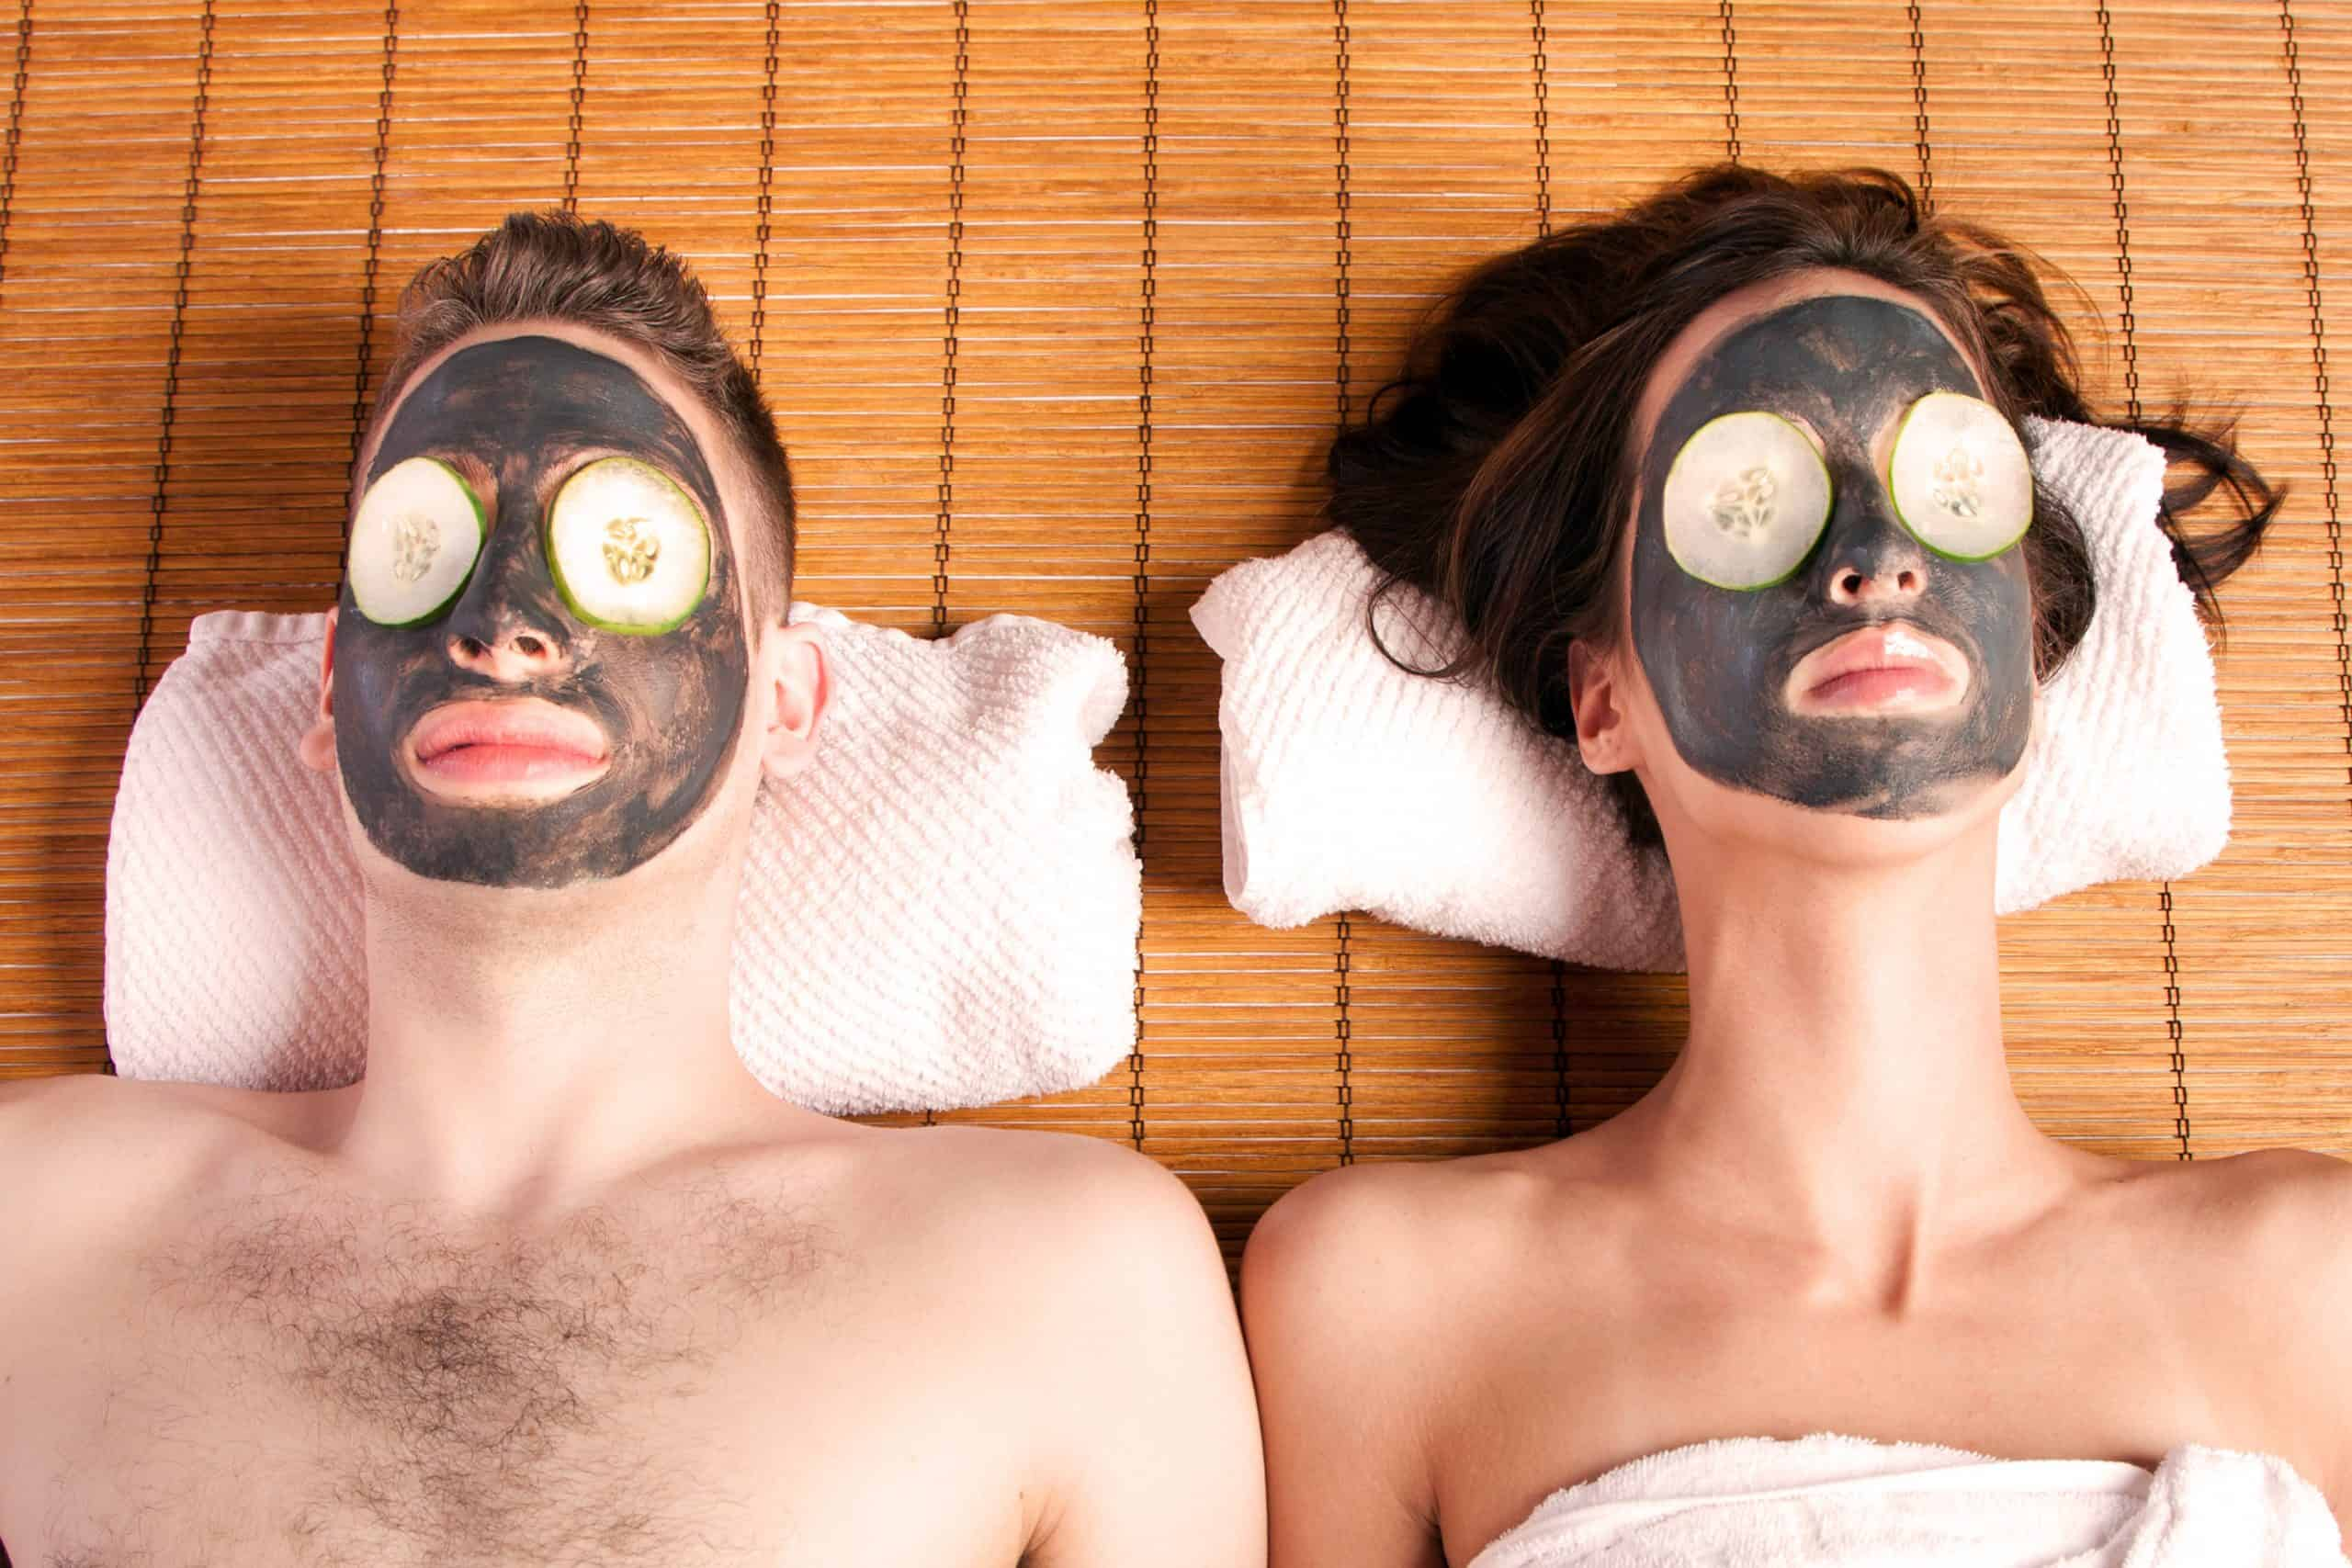 Couples holiday retreat at spa getting facial mask with cucumber skincare relaxing beauty treatment on bamboo.